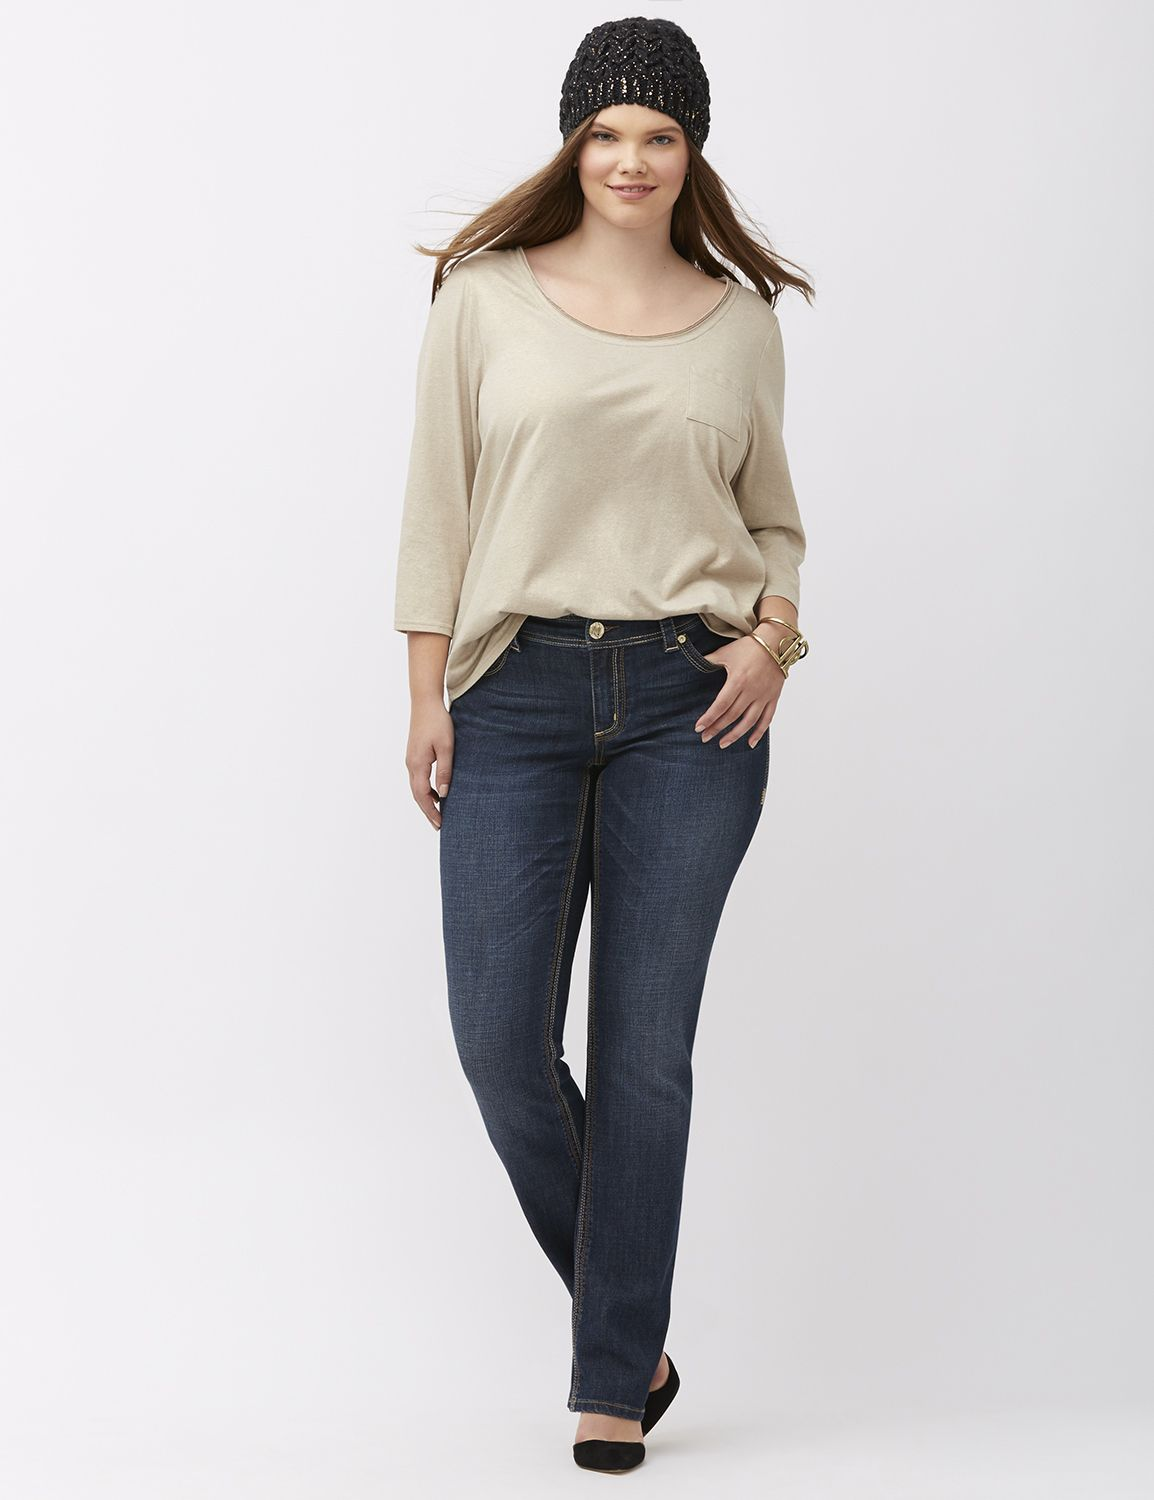 Lane Bryant Womens Straight Leg Jean By Melissa Mccarthy Seven7 24 Dark Wash